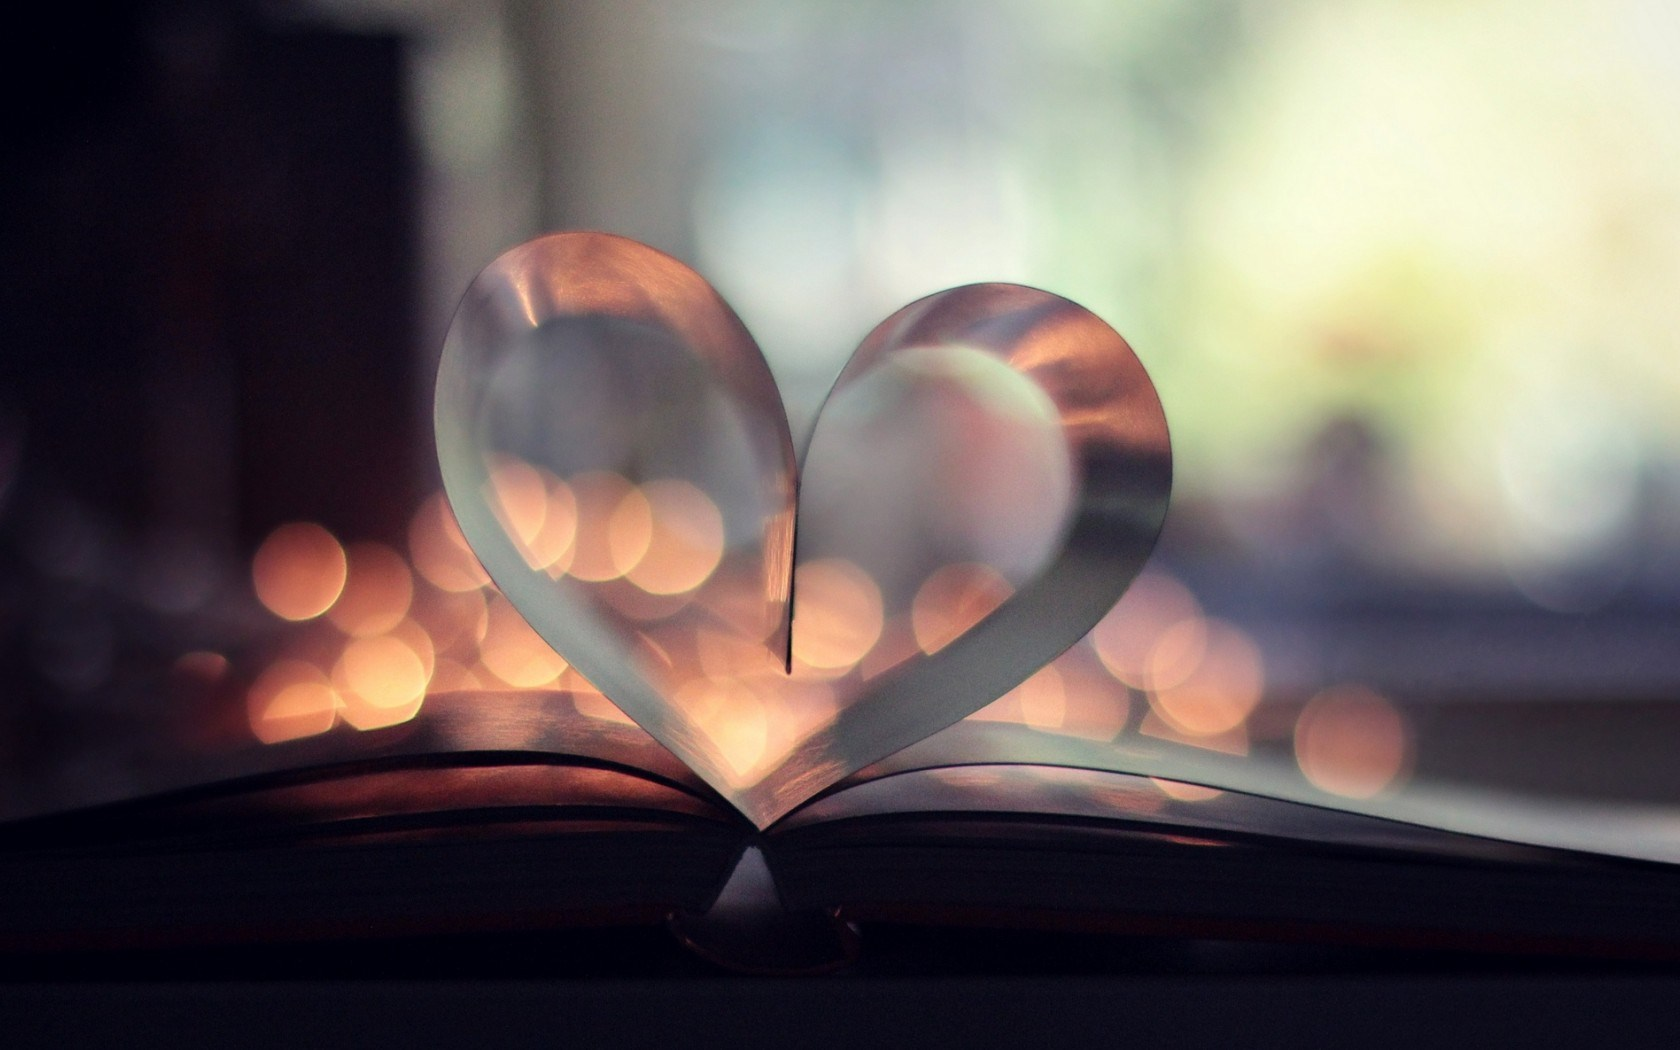 Book Heart Lights Bokeh Love